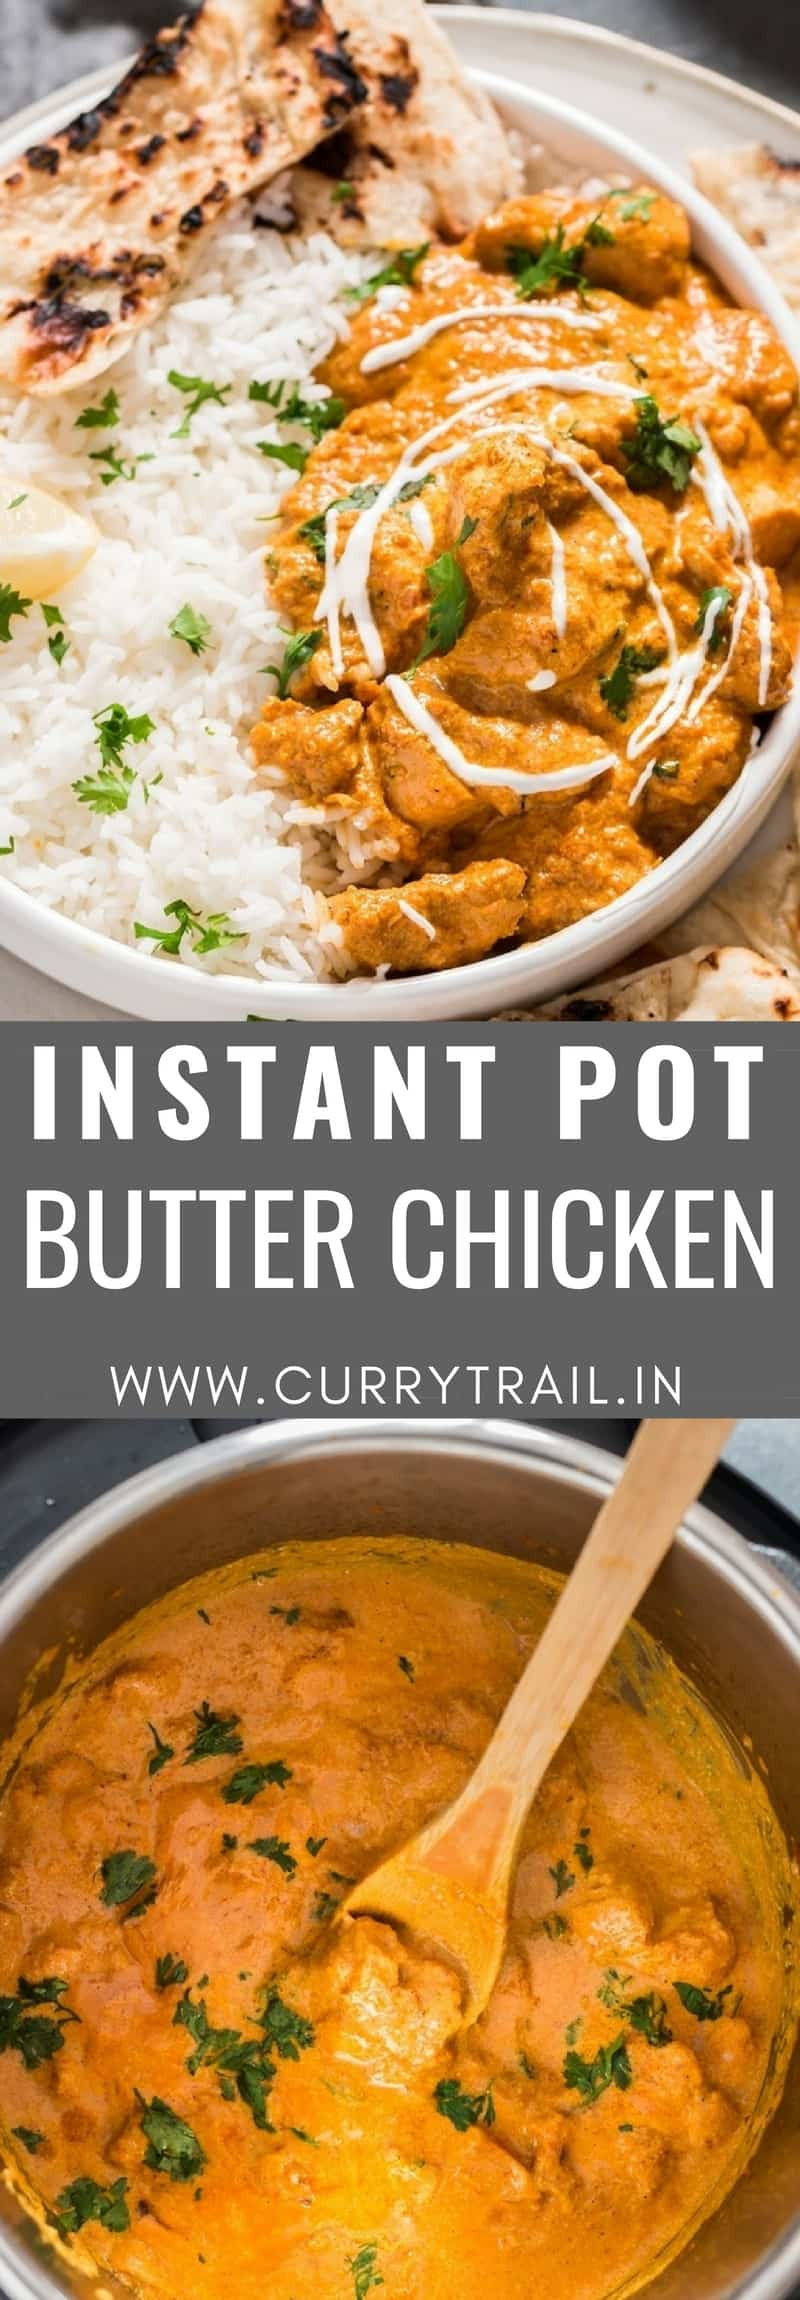 Instant pot butter chicken with text overlay